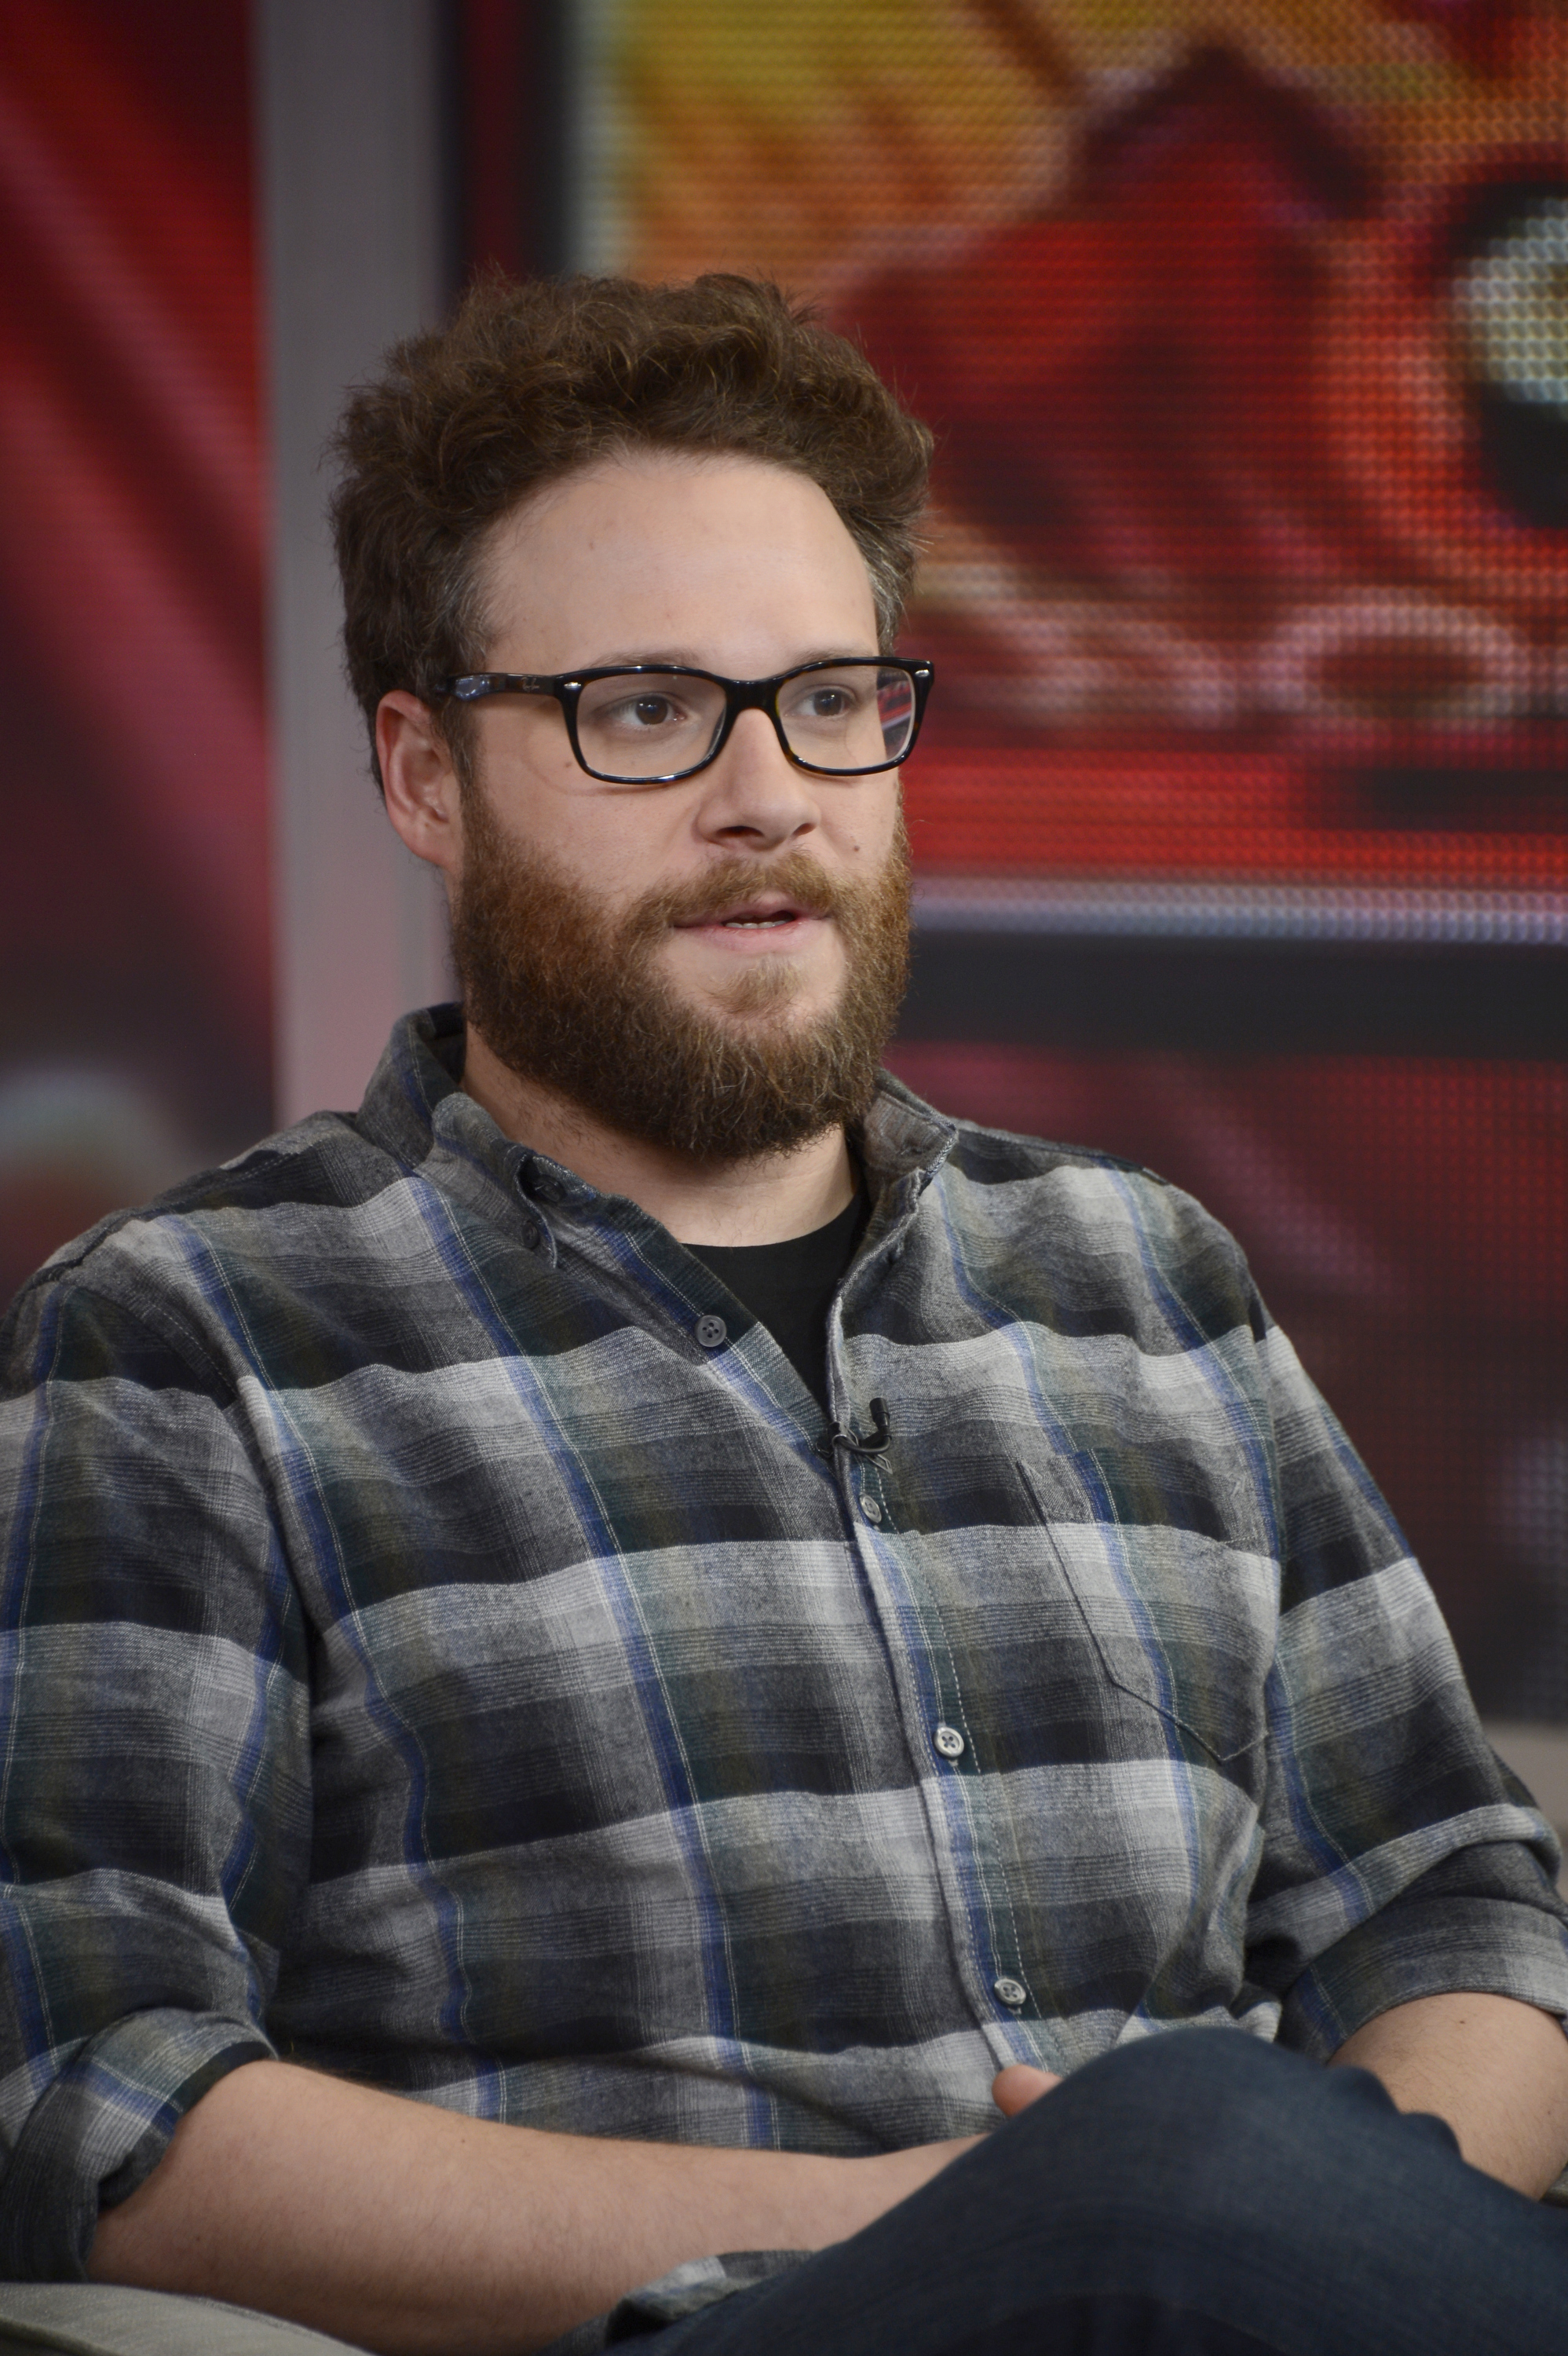 Seth Rogen appears on Good Morning America, Dec. 16, 2014.